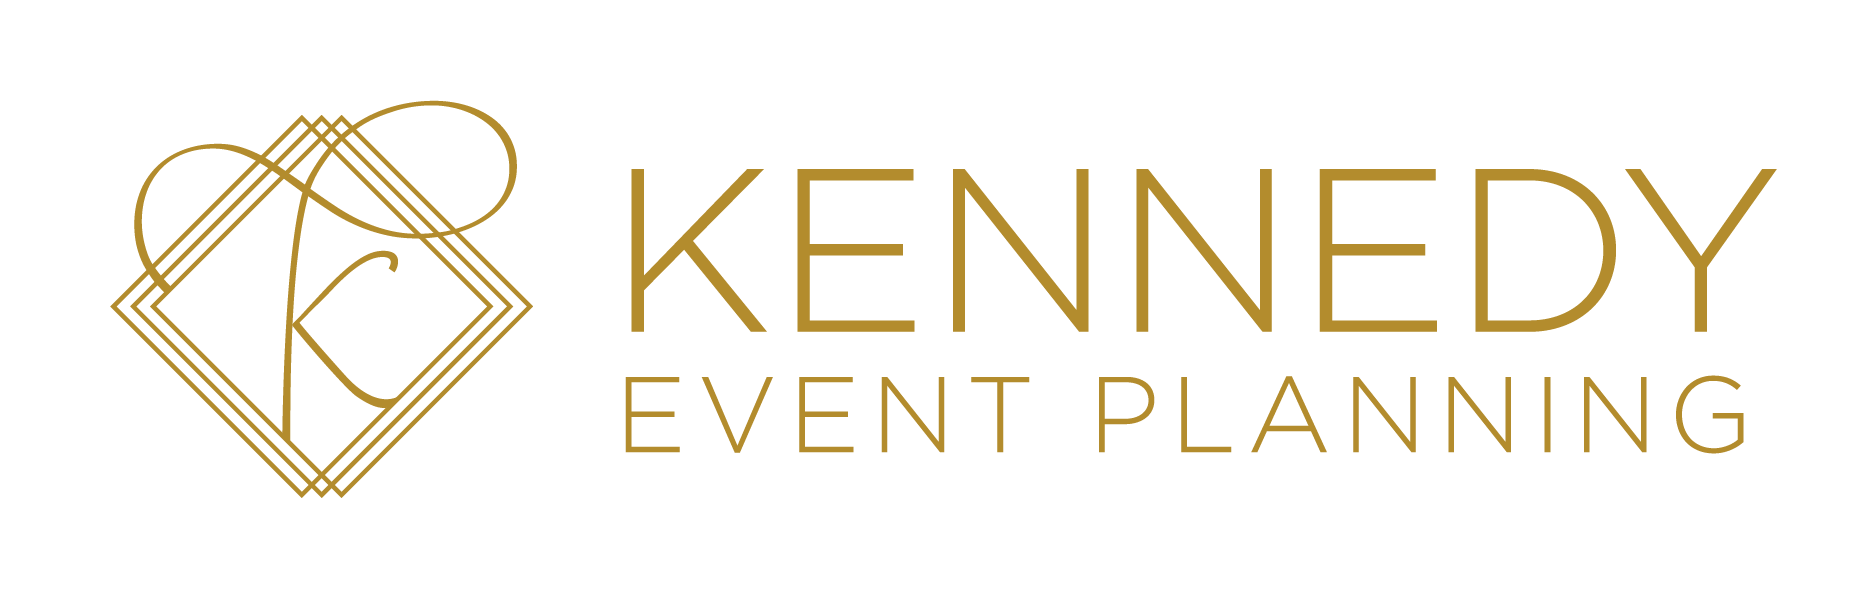 Kennedy Event Planning